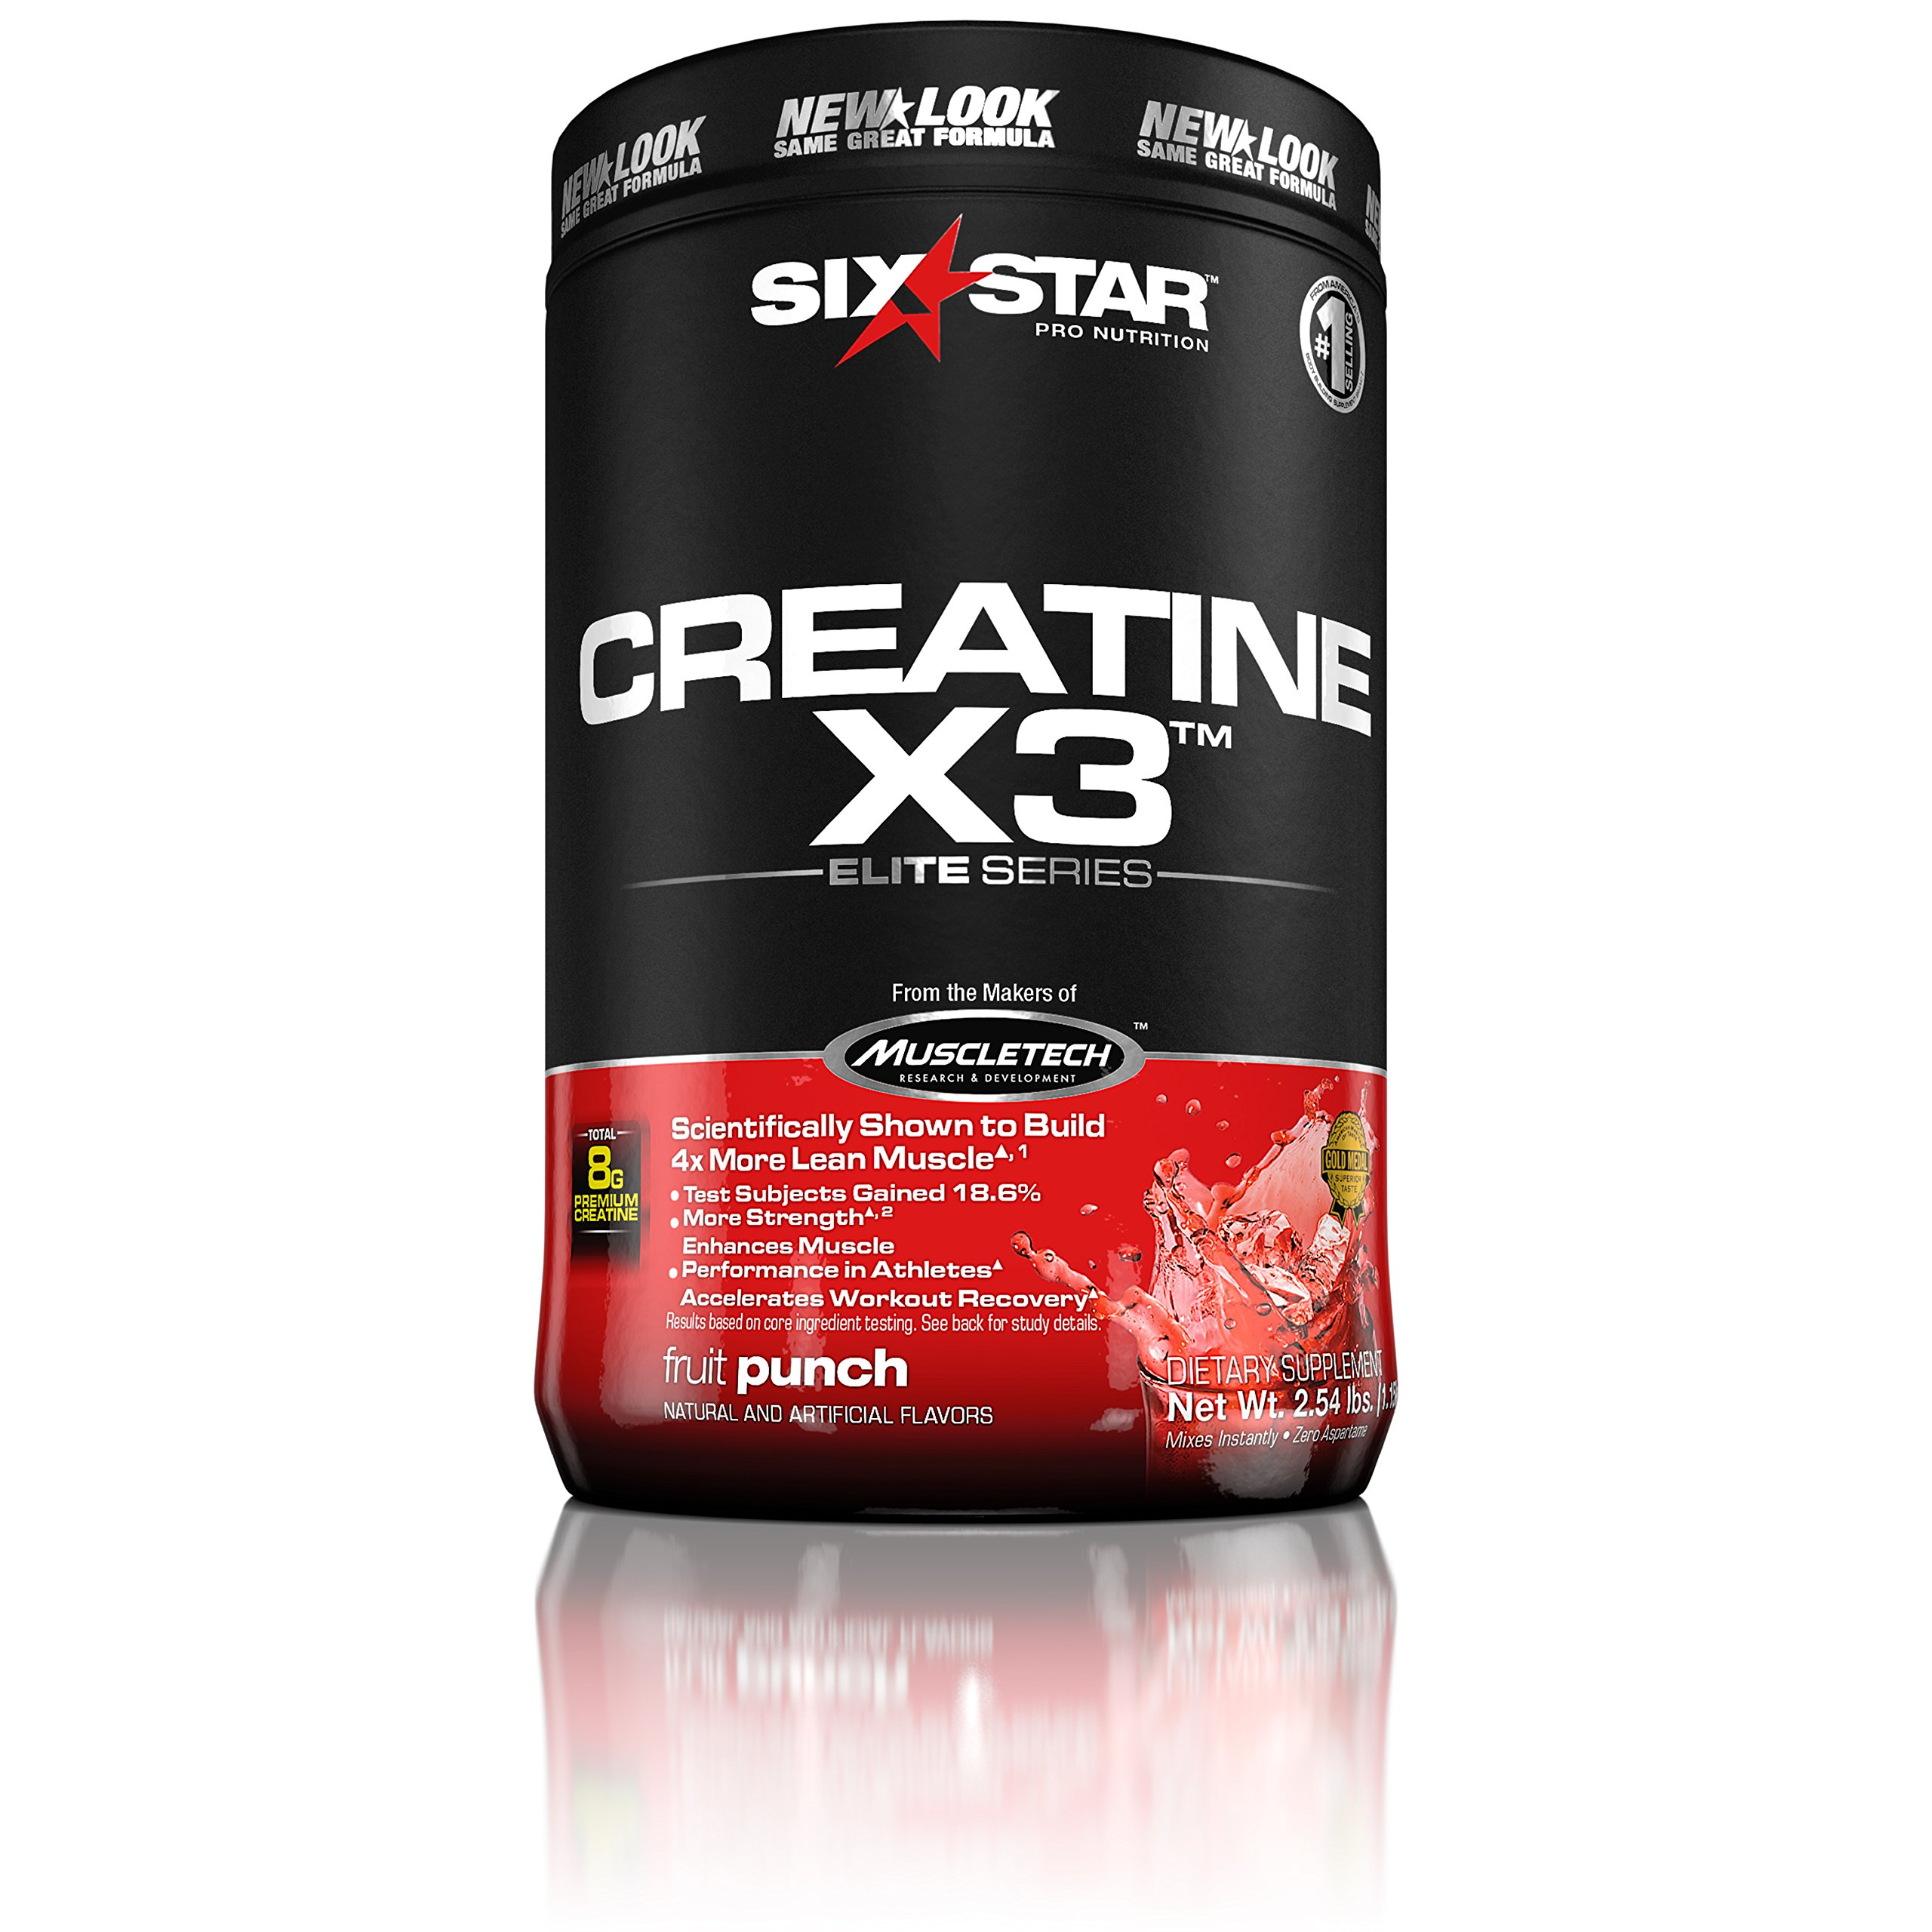 Six Star Pro Nutrition Creatine X3 Powder, Max-Dosed Creatine Powder, Micronized Creatine, Creatine HCl, Fruit Punch, 2.52 Pounds